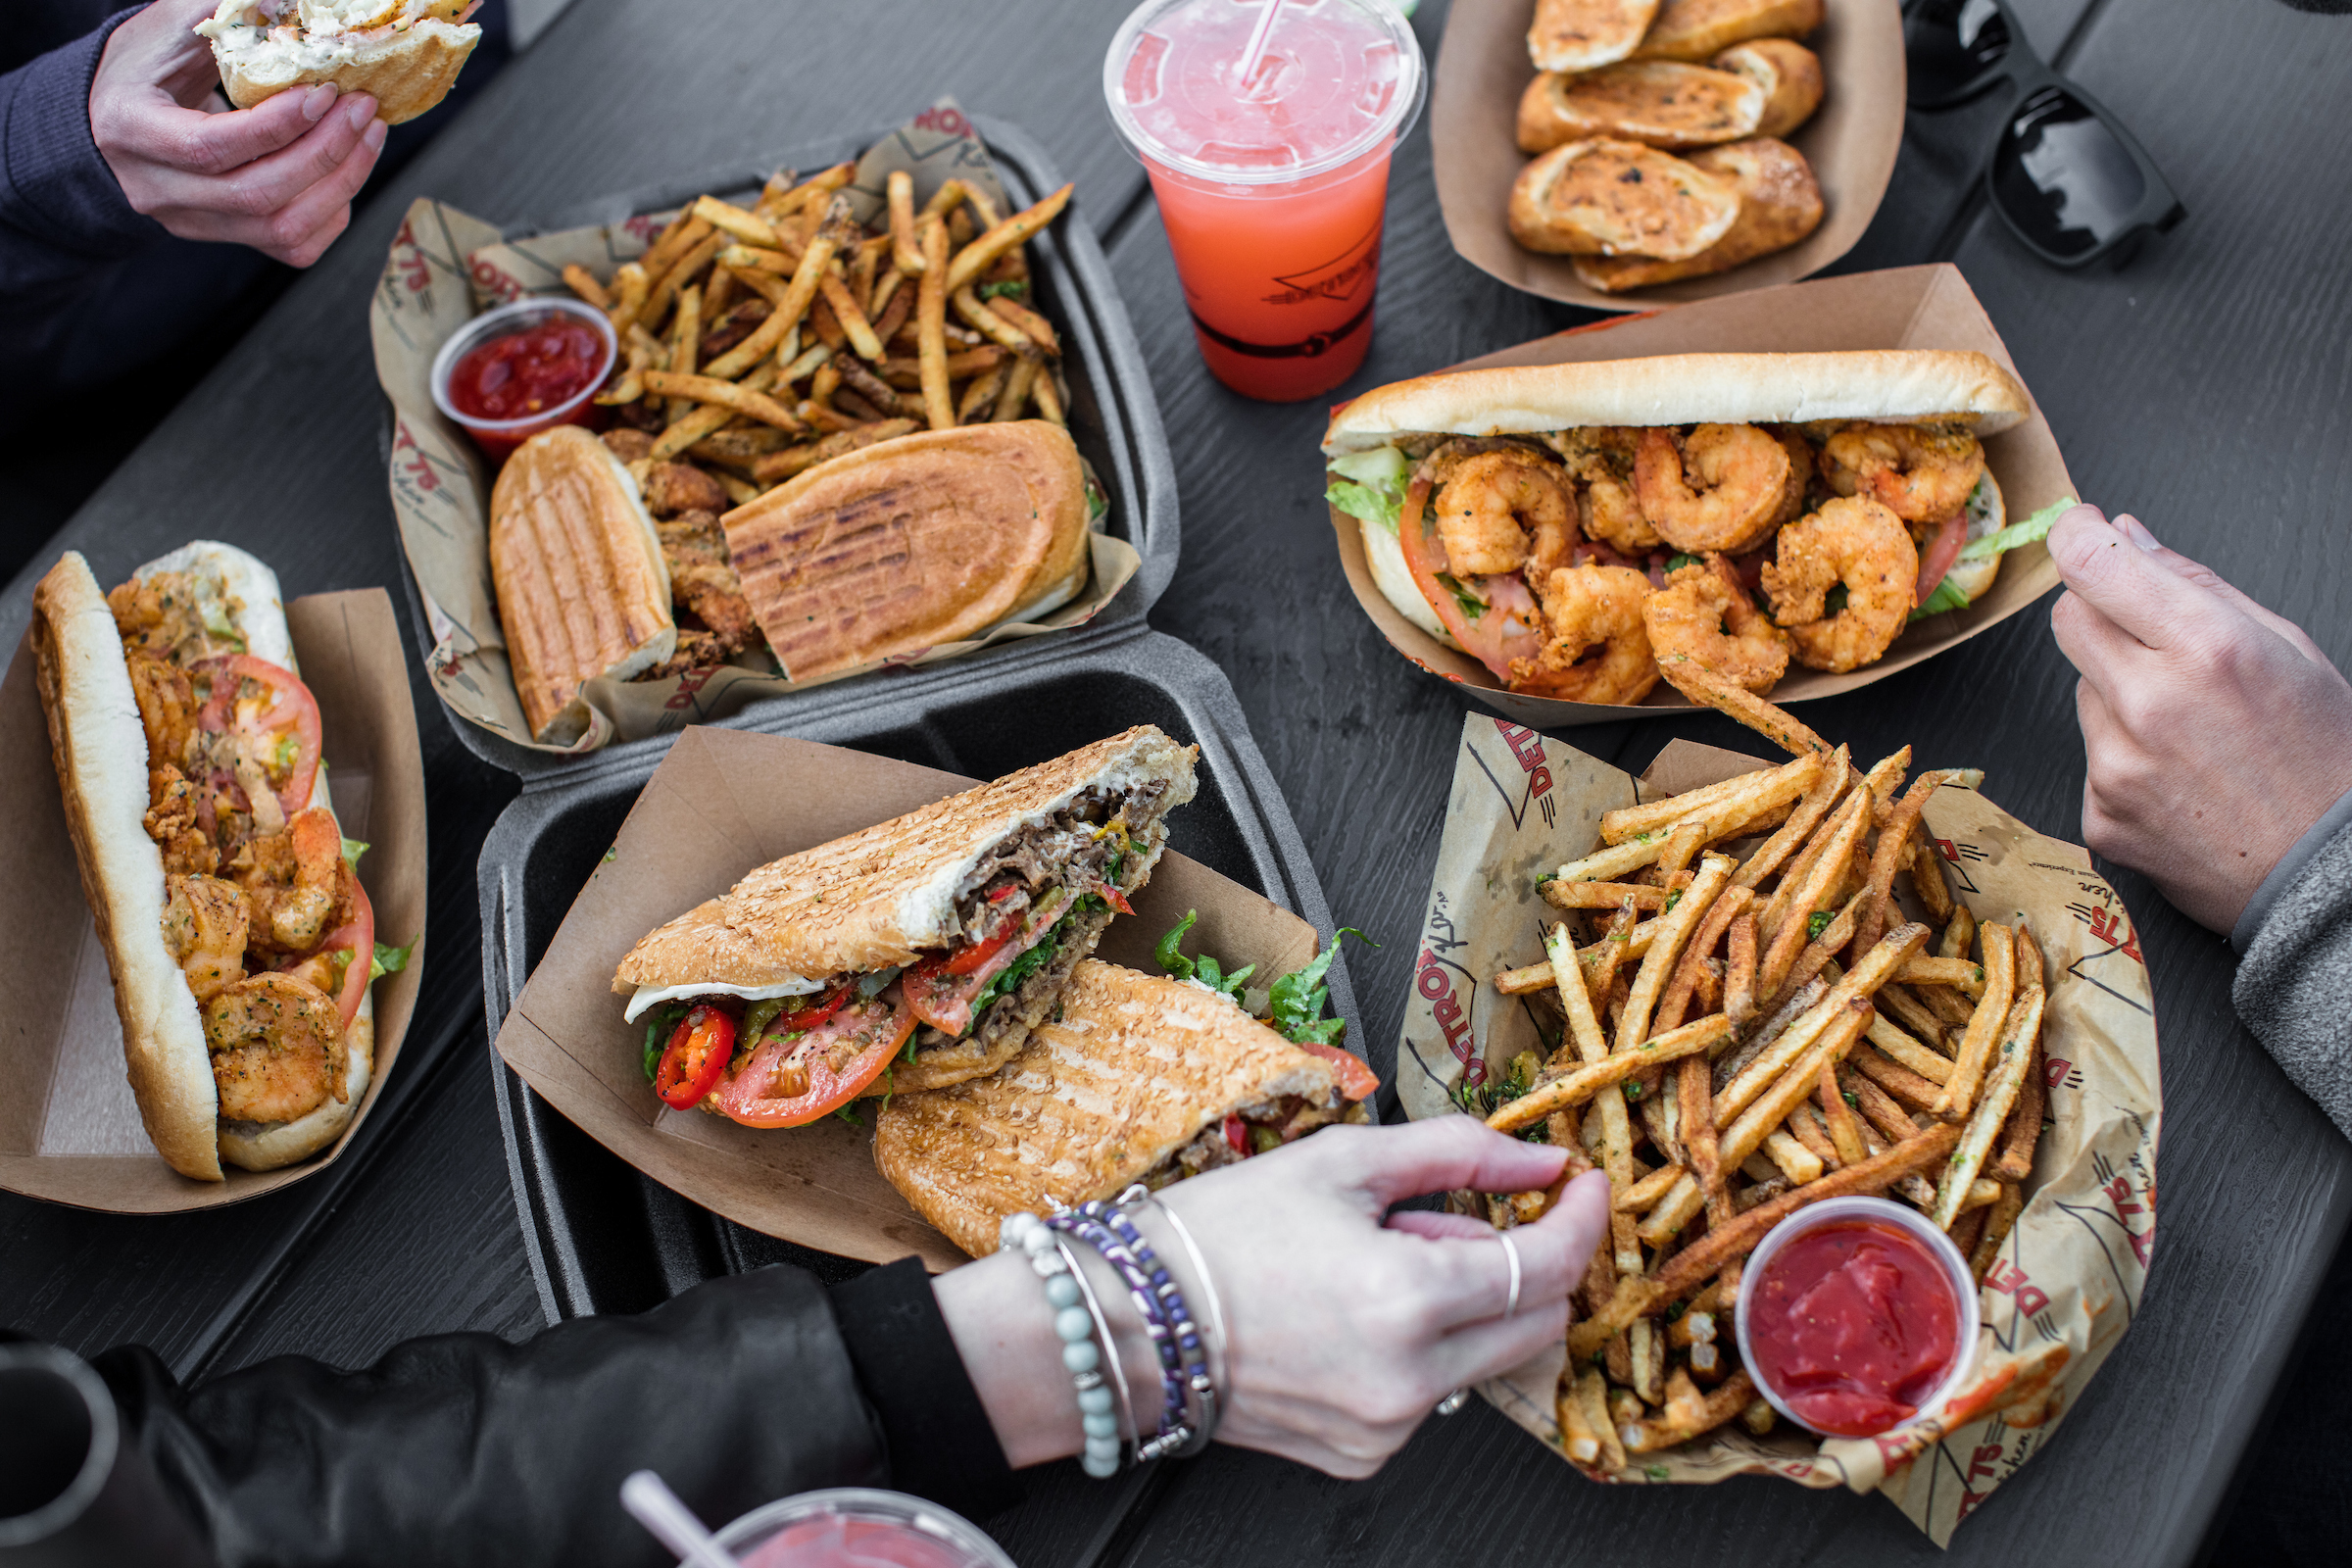 Hands reach for fries across a table that's covered in black carryout containers filled with fries, pressed sandwiches, and shrimp sandwiches.